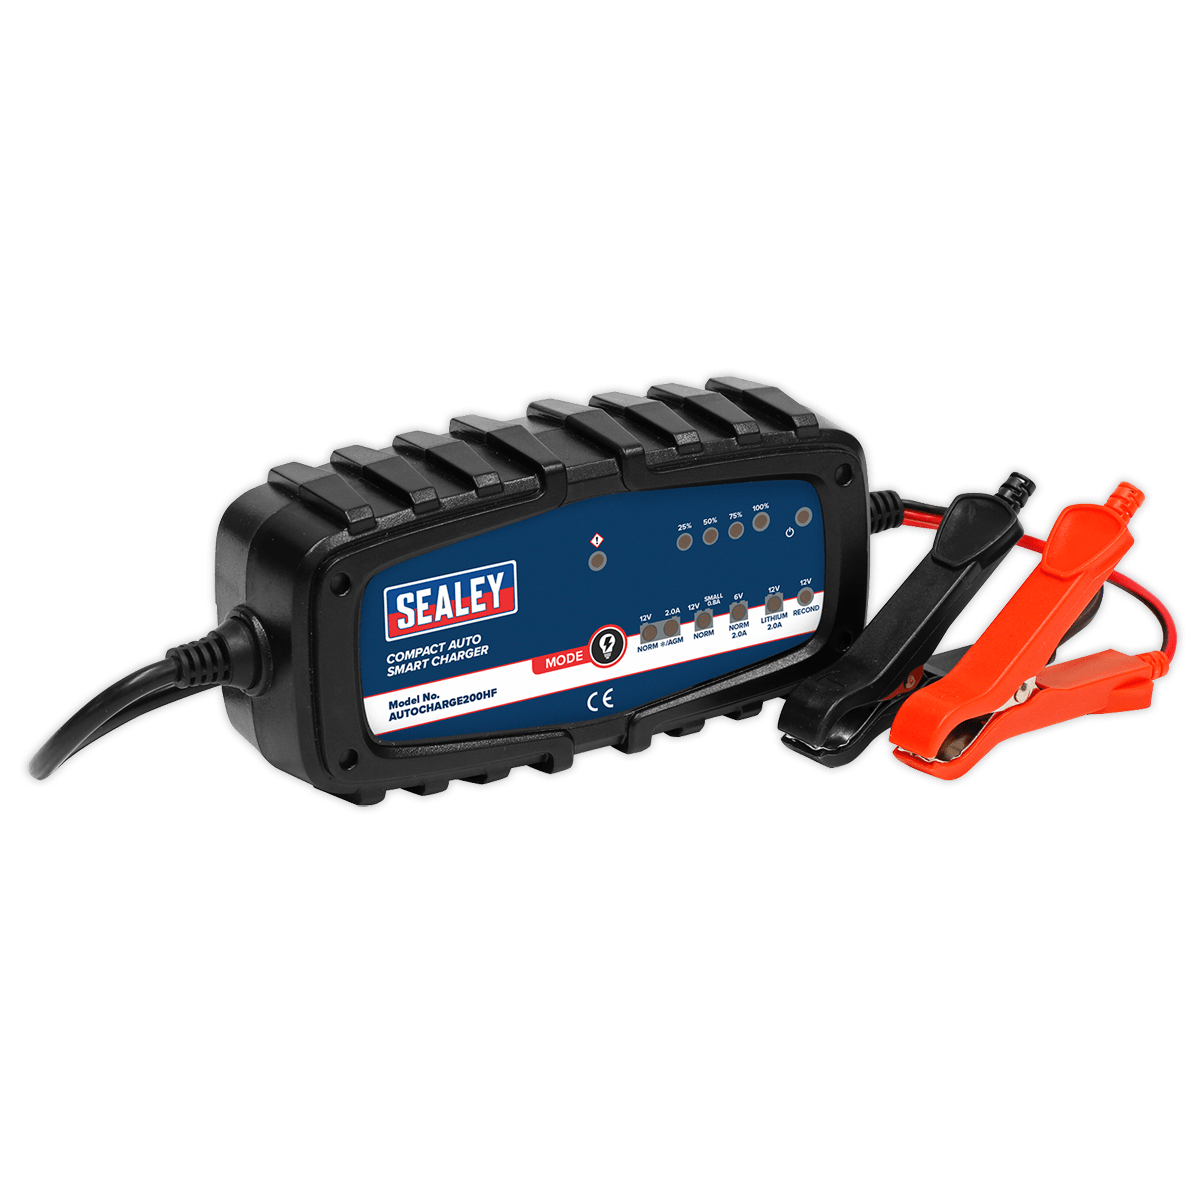 Sealey Compact Auto Smart Charger 2A 9-Cycle 6/12V - Lithium AUTOCHARGE200HF | Dual voltage smart charger/maintainer ensures that the battery is kept fully charged and ready-to-use for extended periods of time. | toolforce.ie